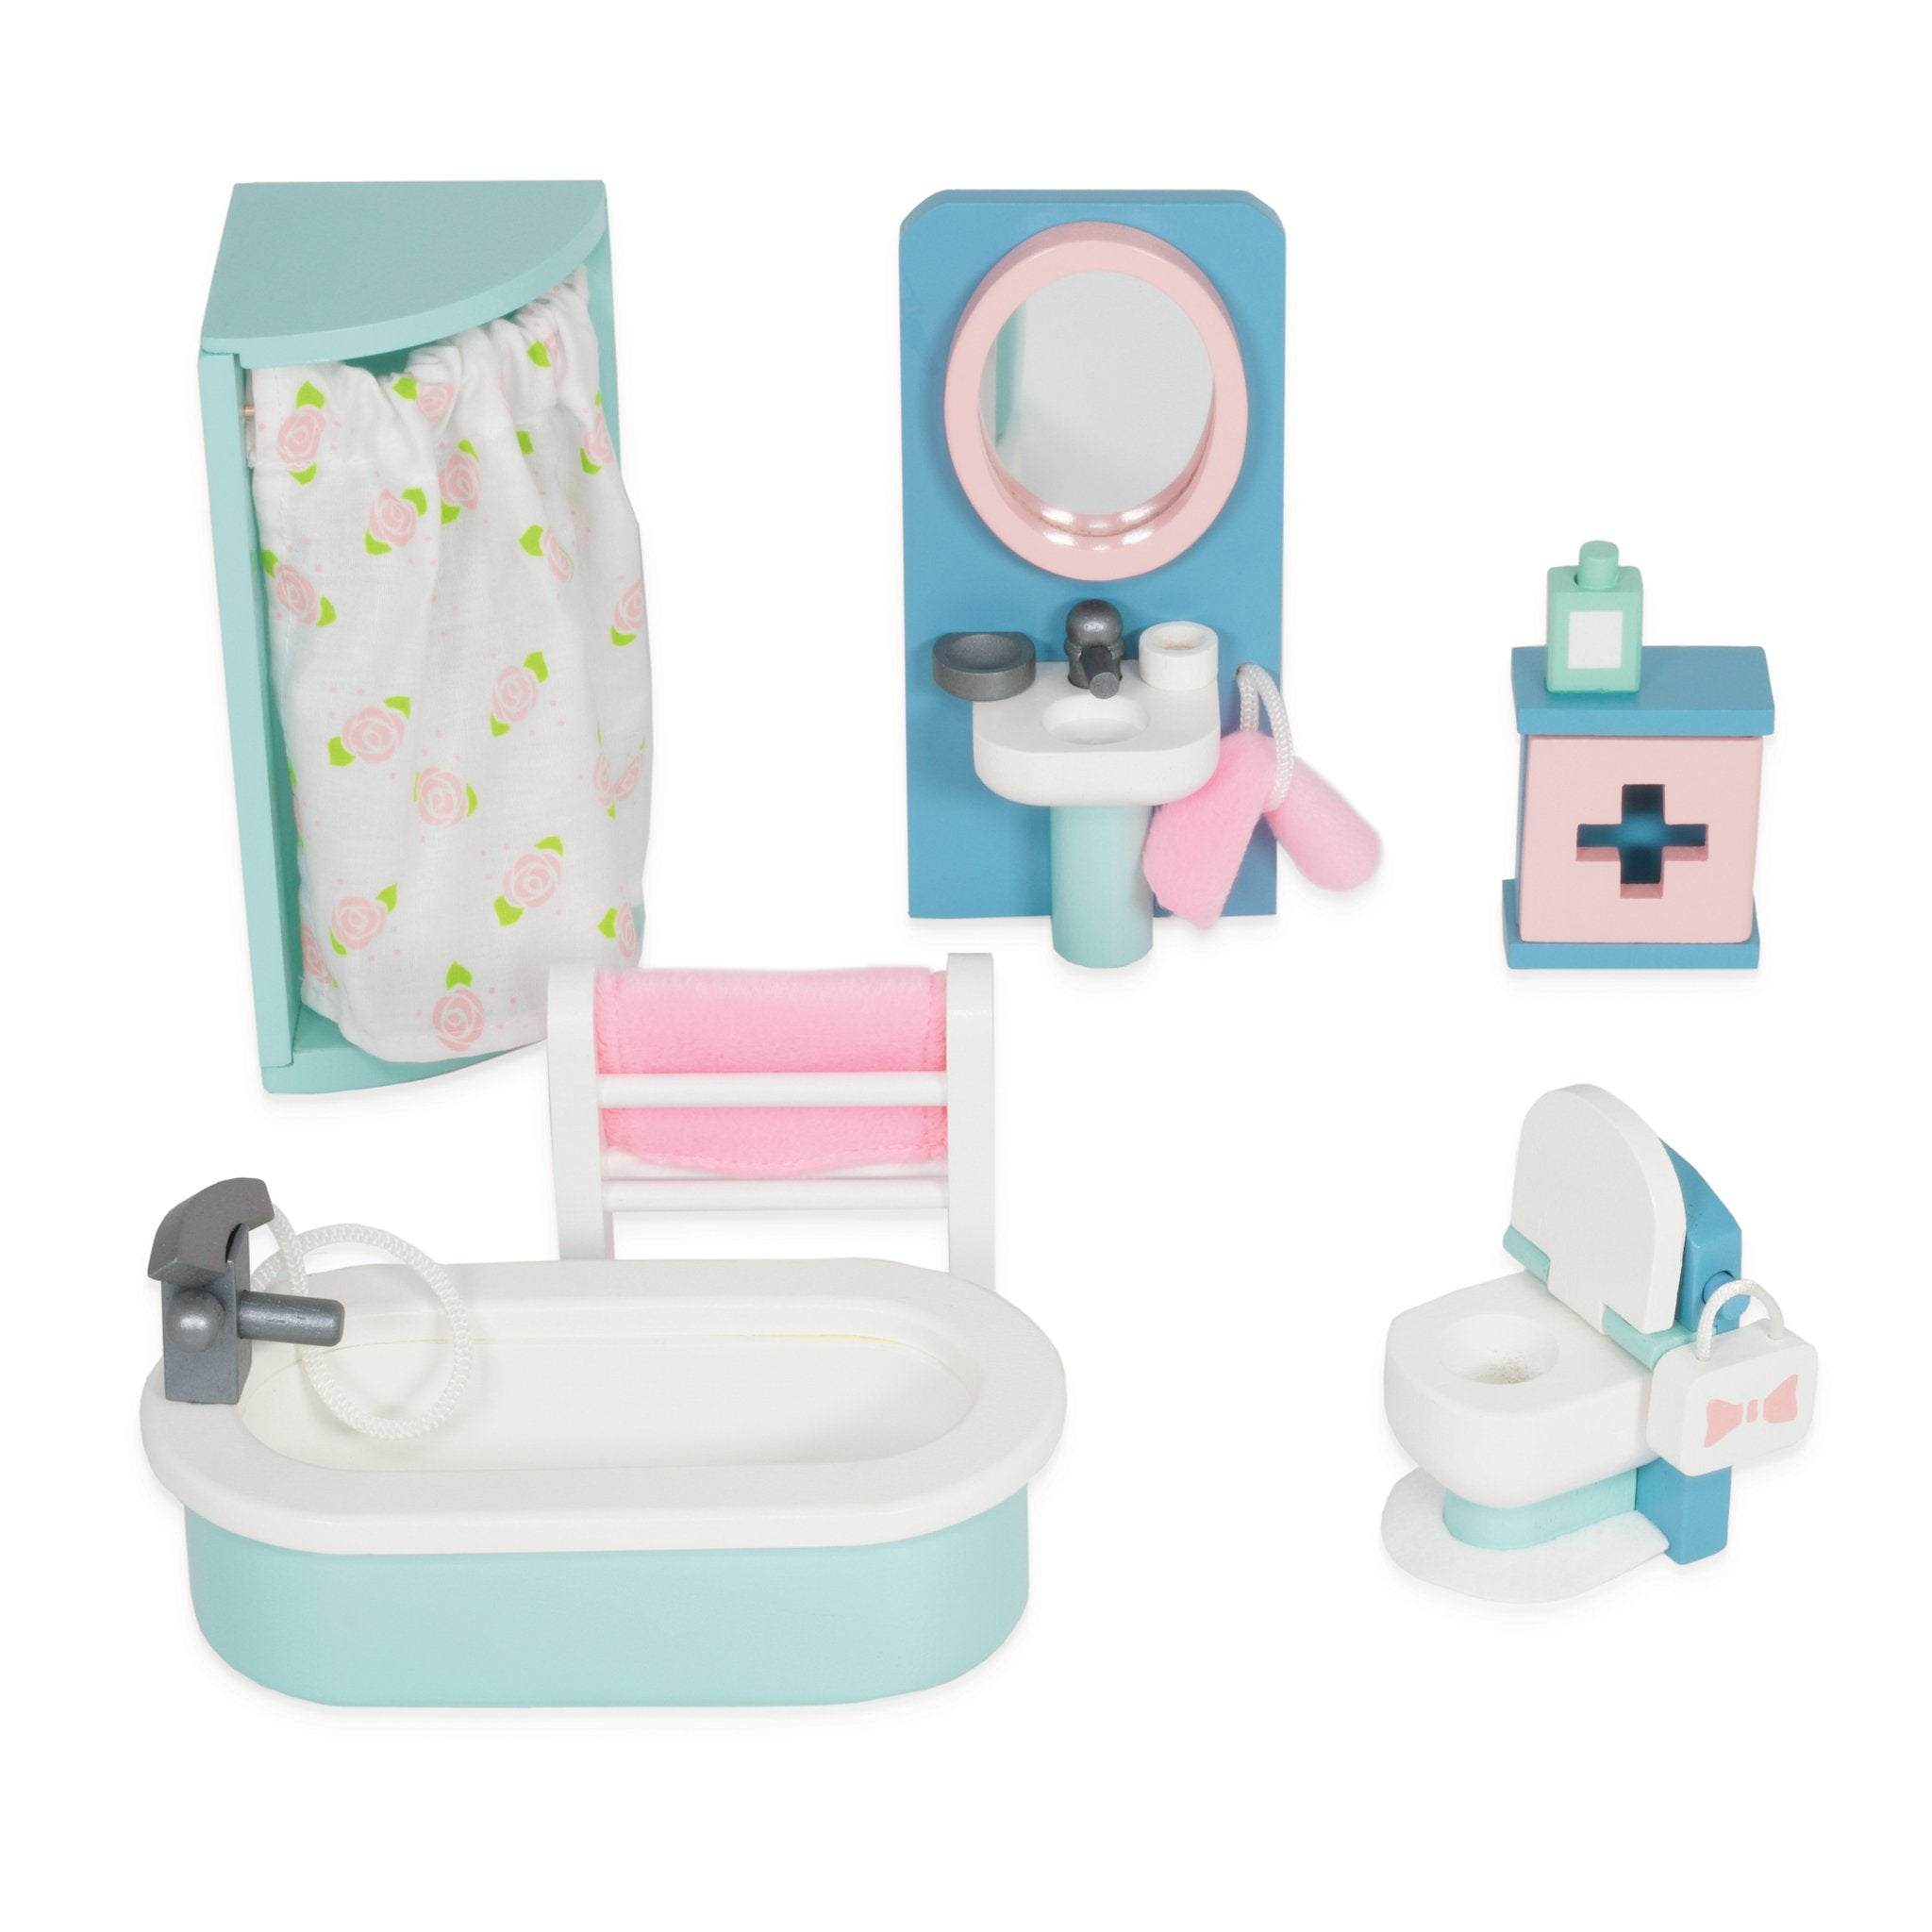 Daisylane Bathroom Wooden Dollhouse Furniture